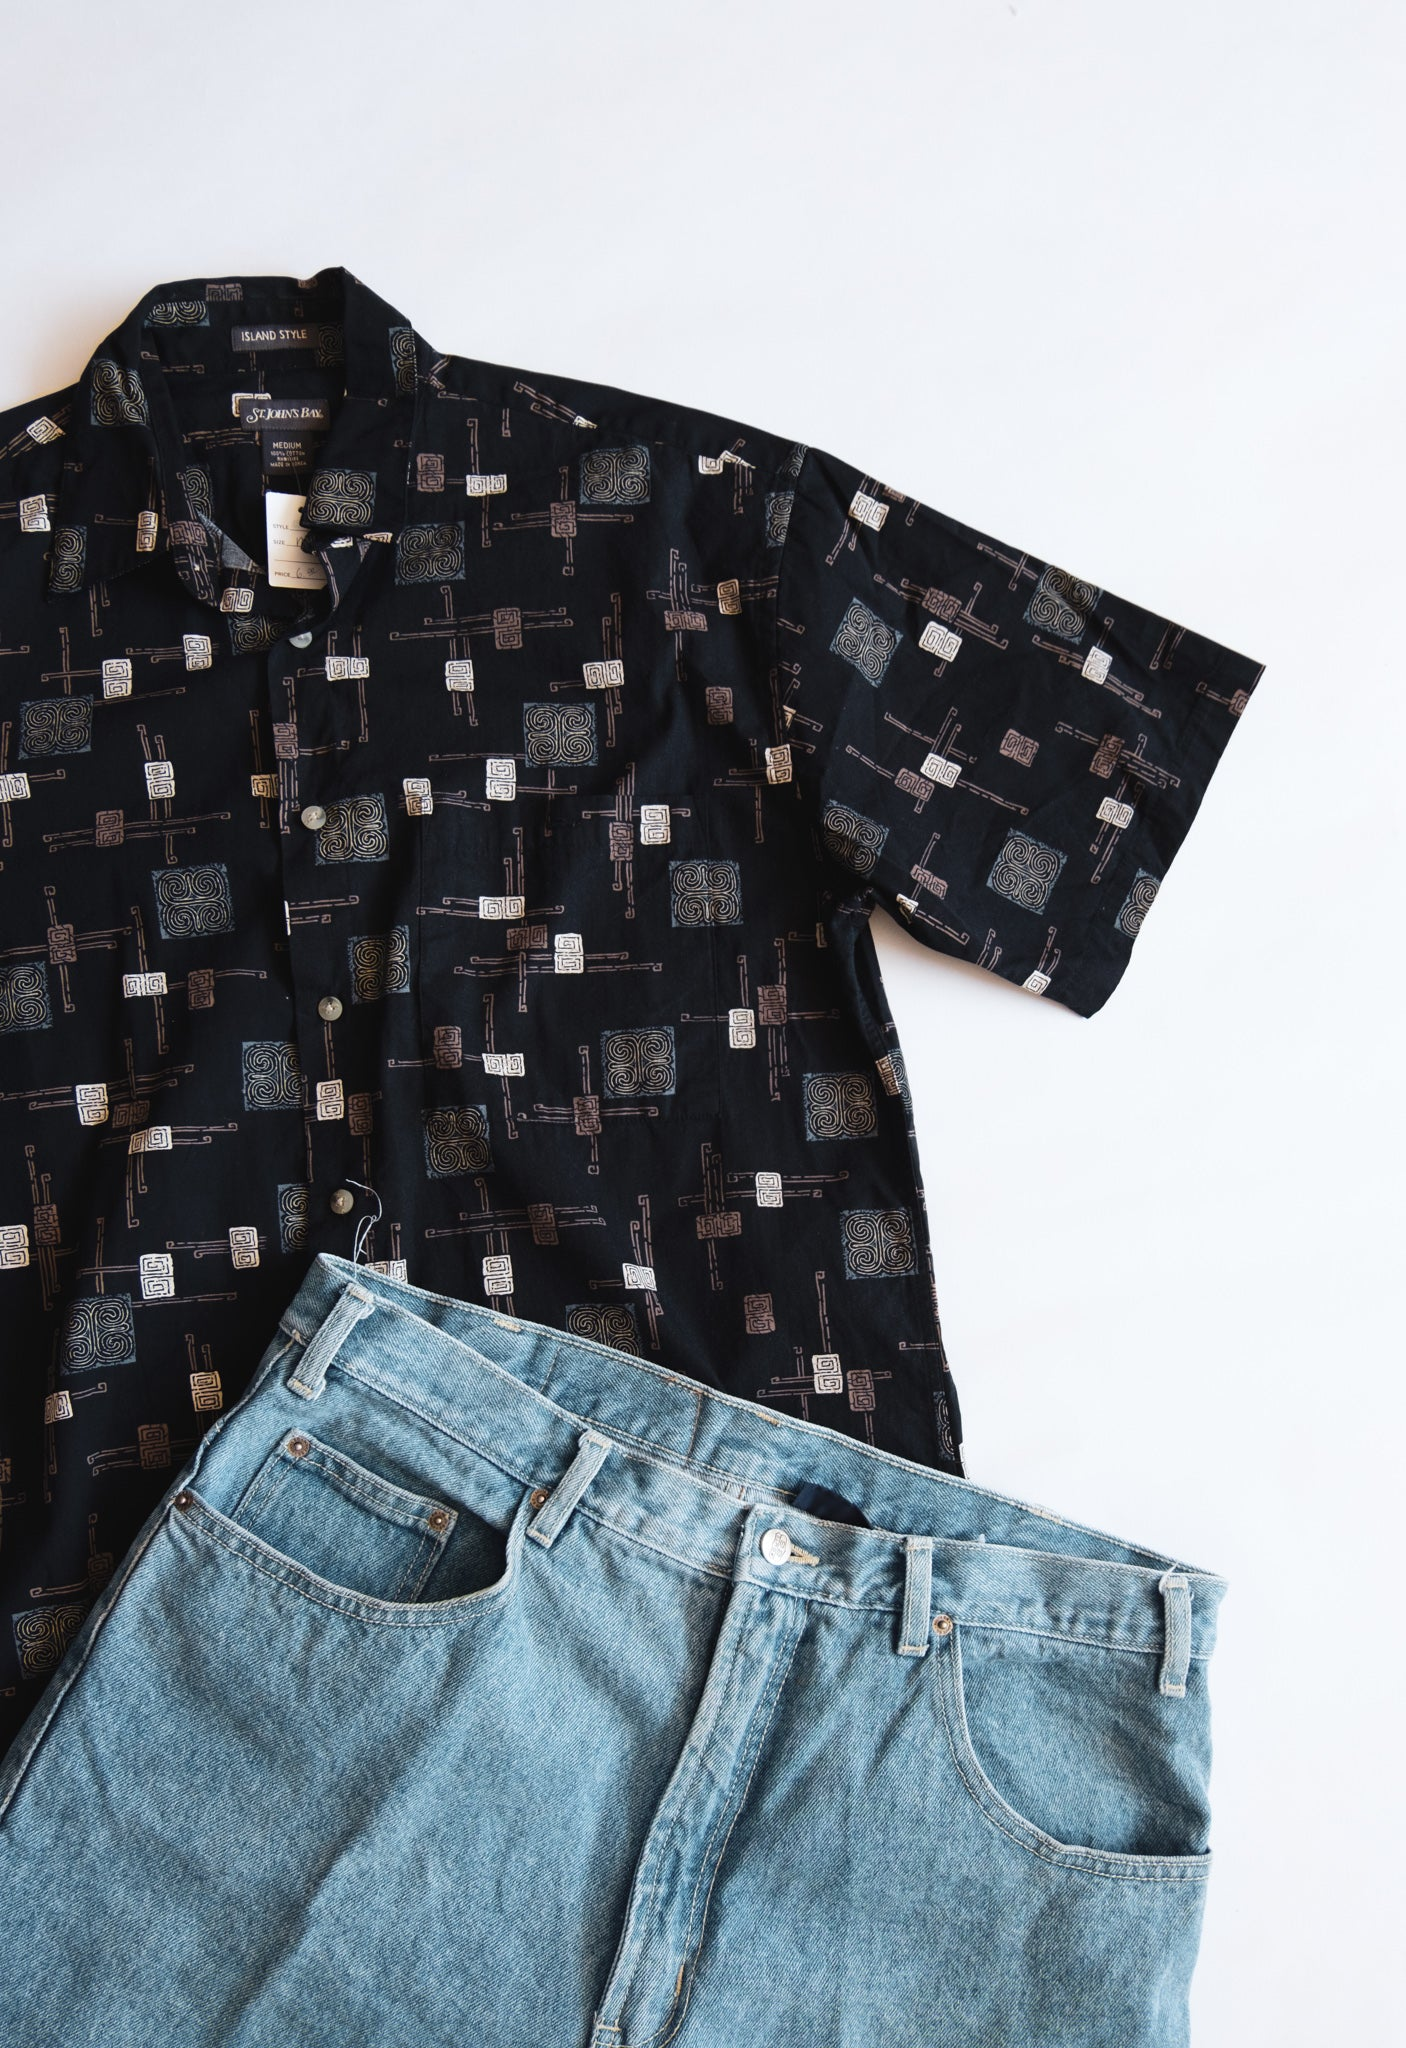 Your Dads Button Up Tee